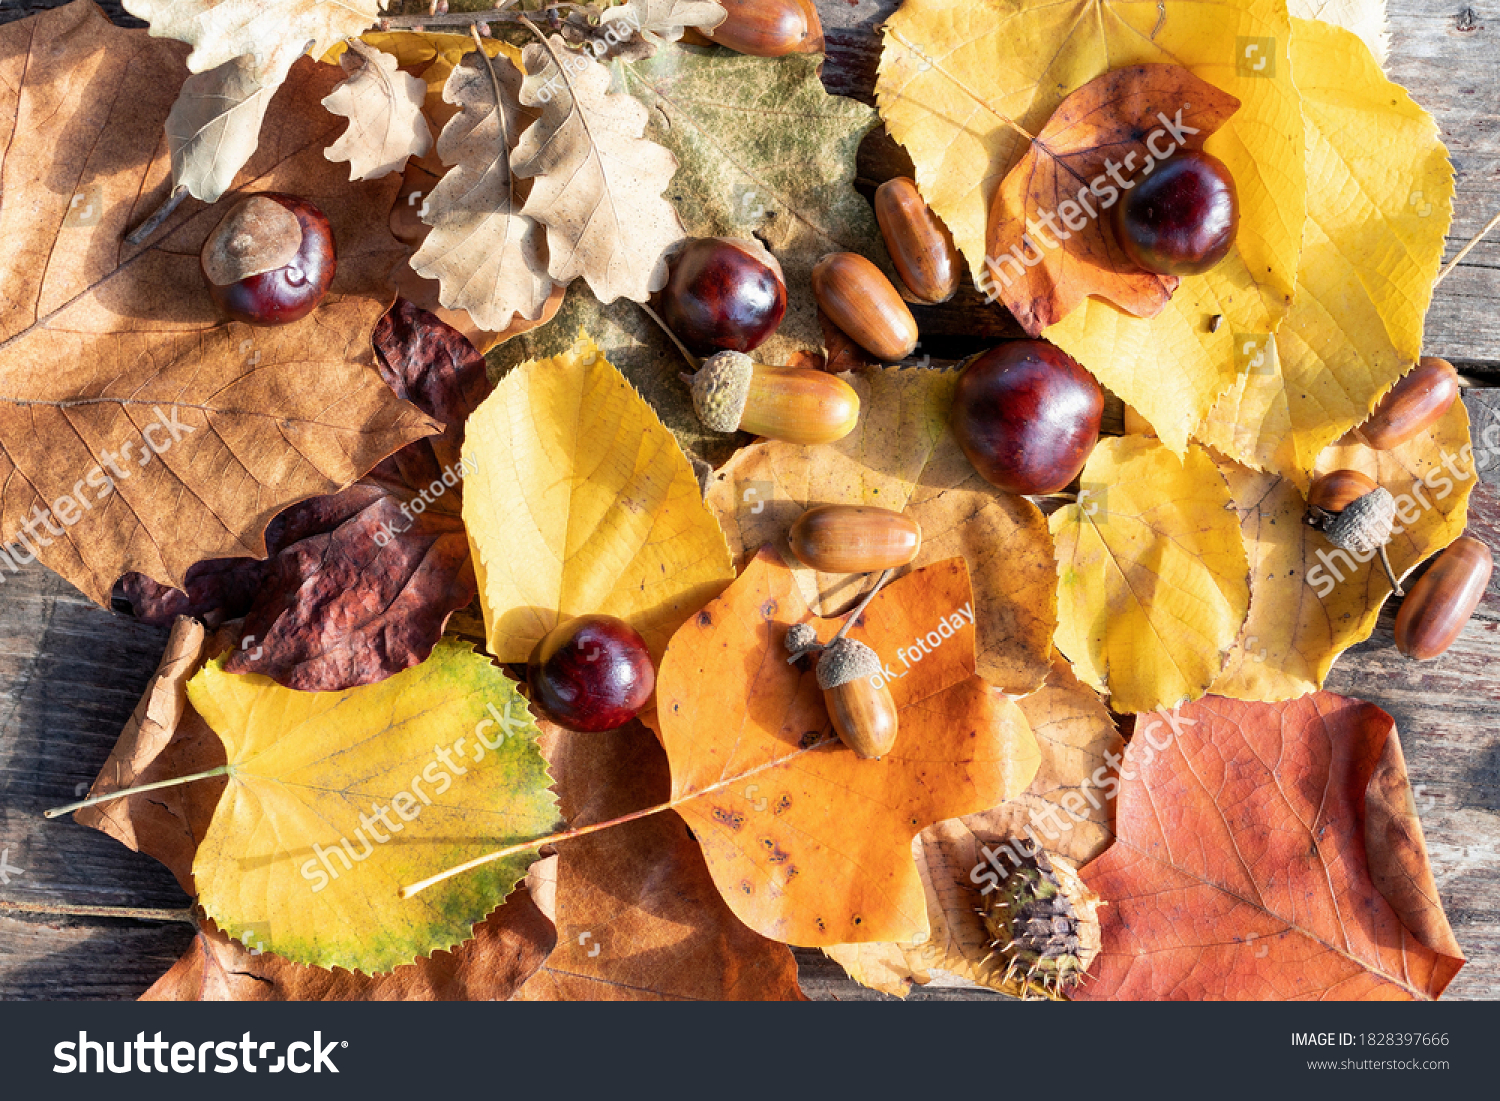 Autumn background: dry yellowed leaves of different trees and fruits of oak and horse chestnut, top view